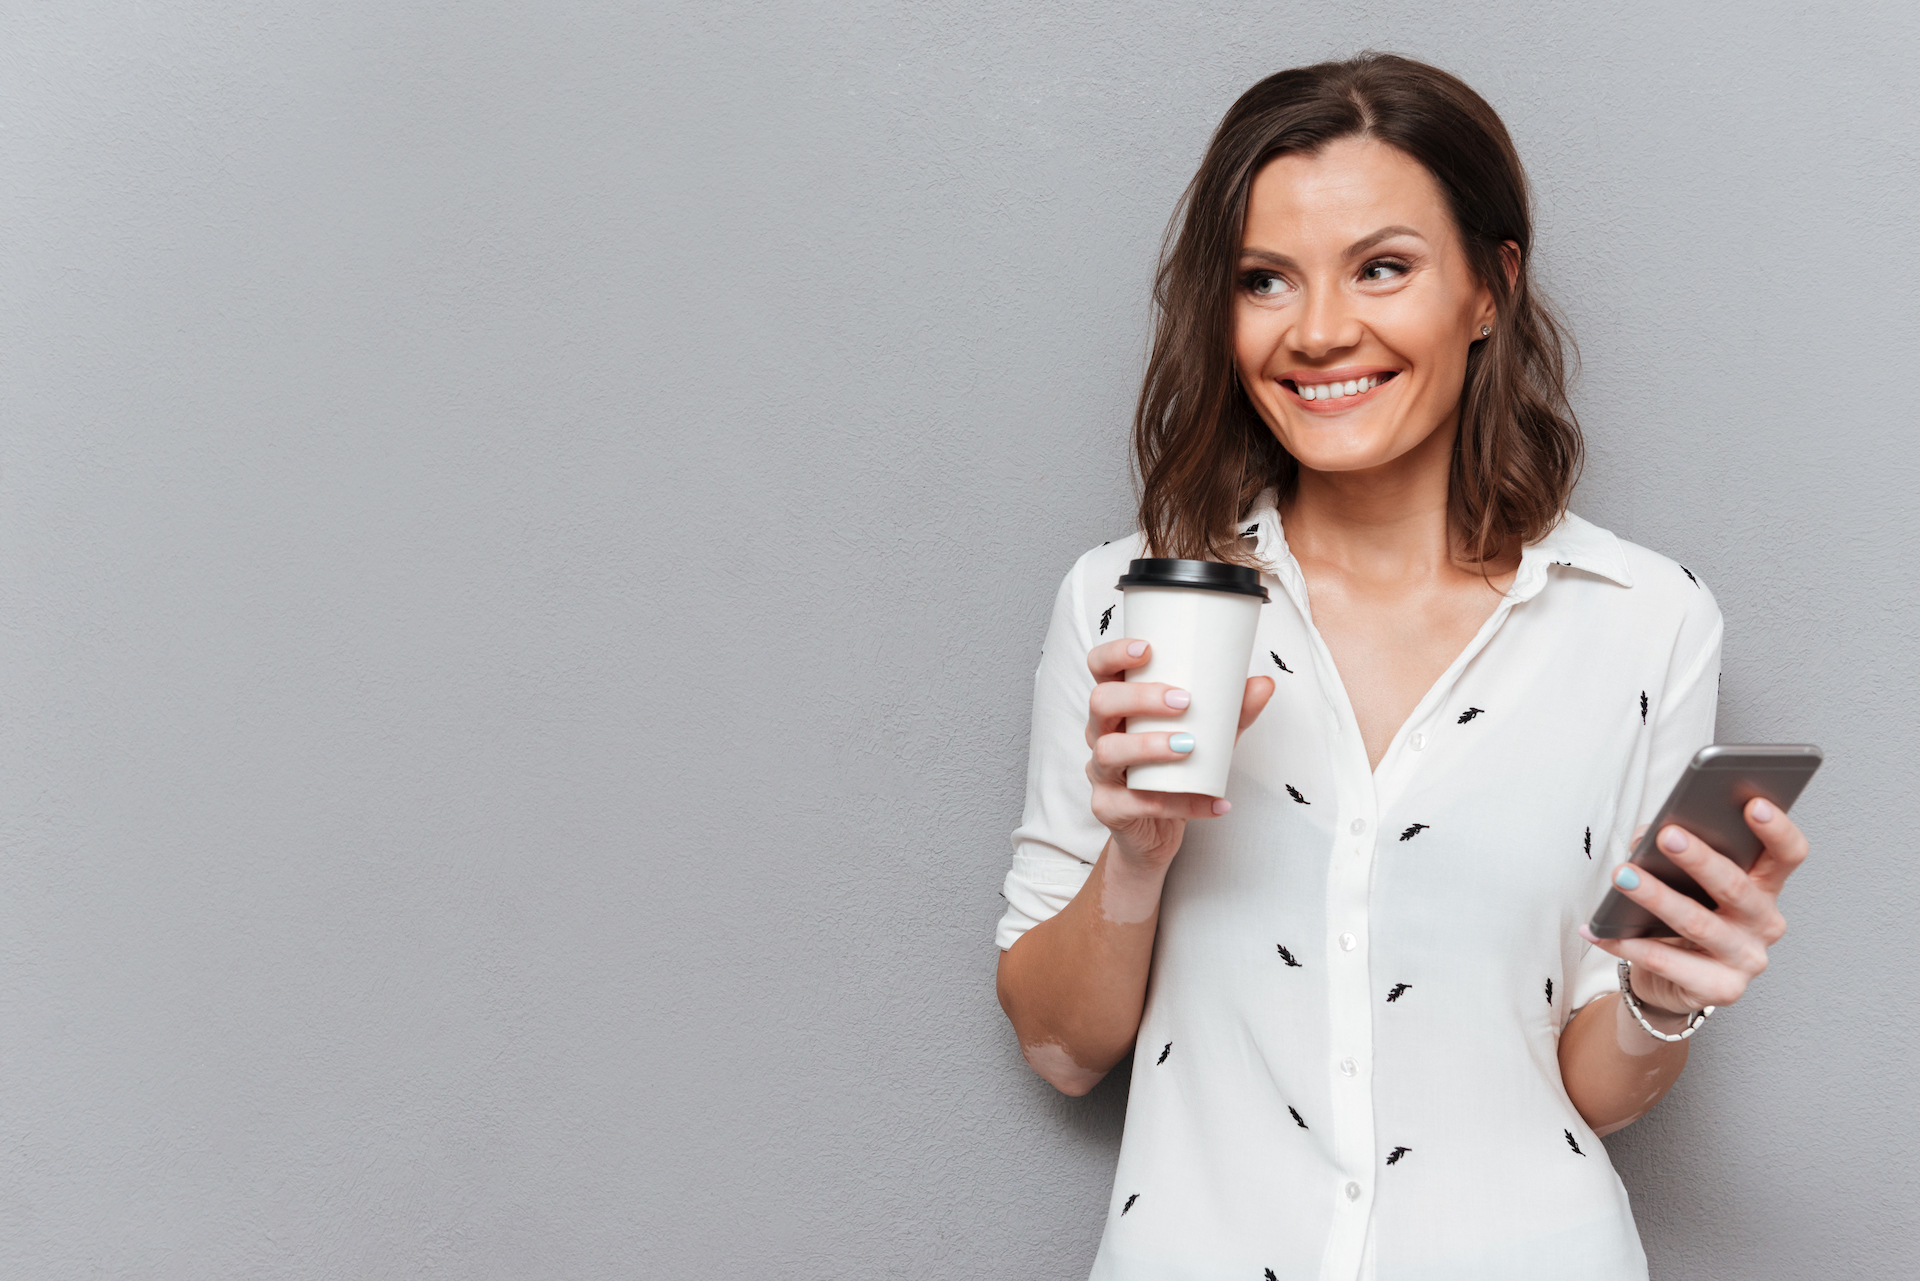 Glad woman with cup of coffee and smartphone in hands